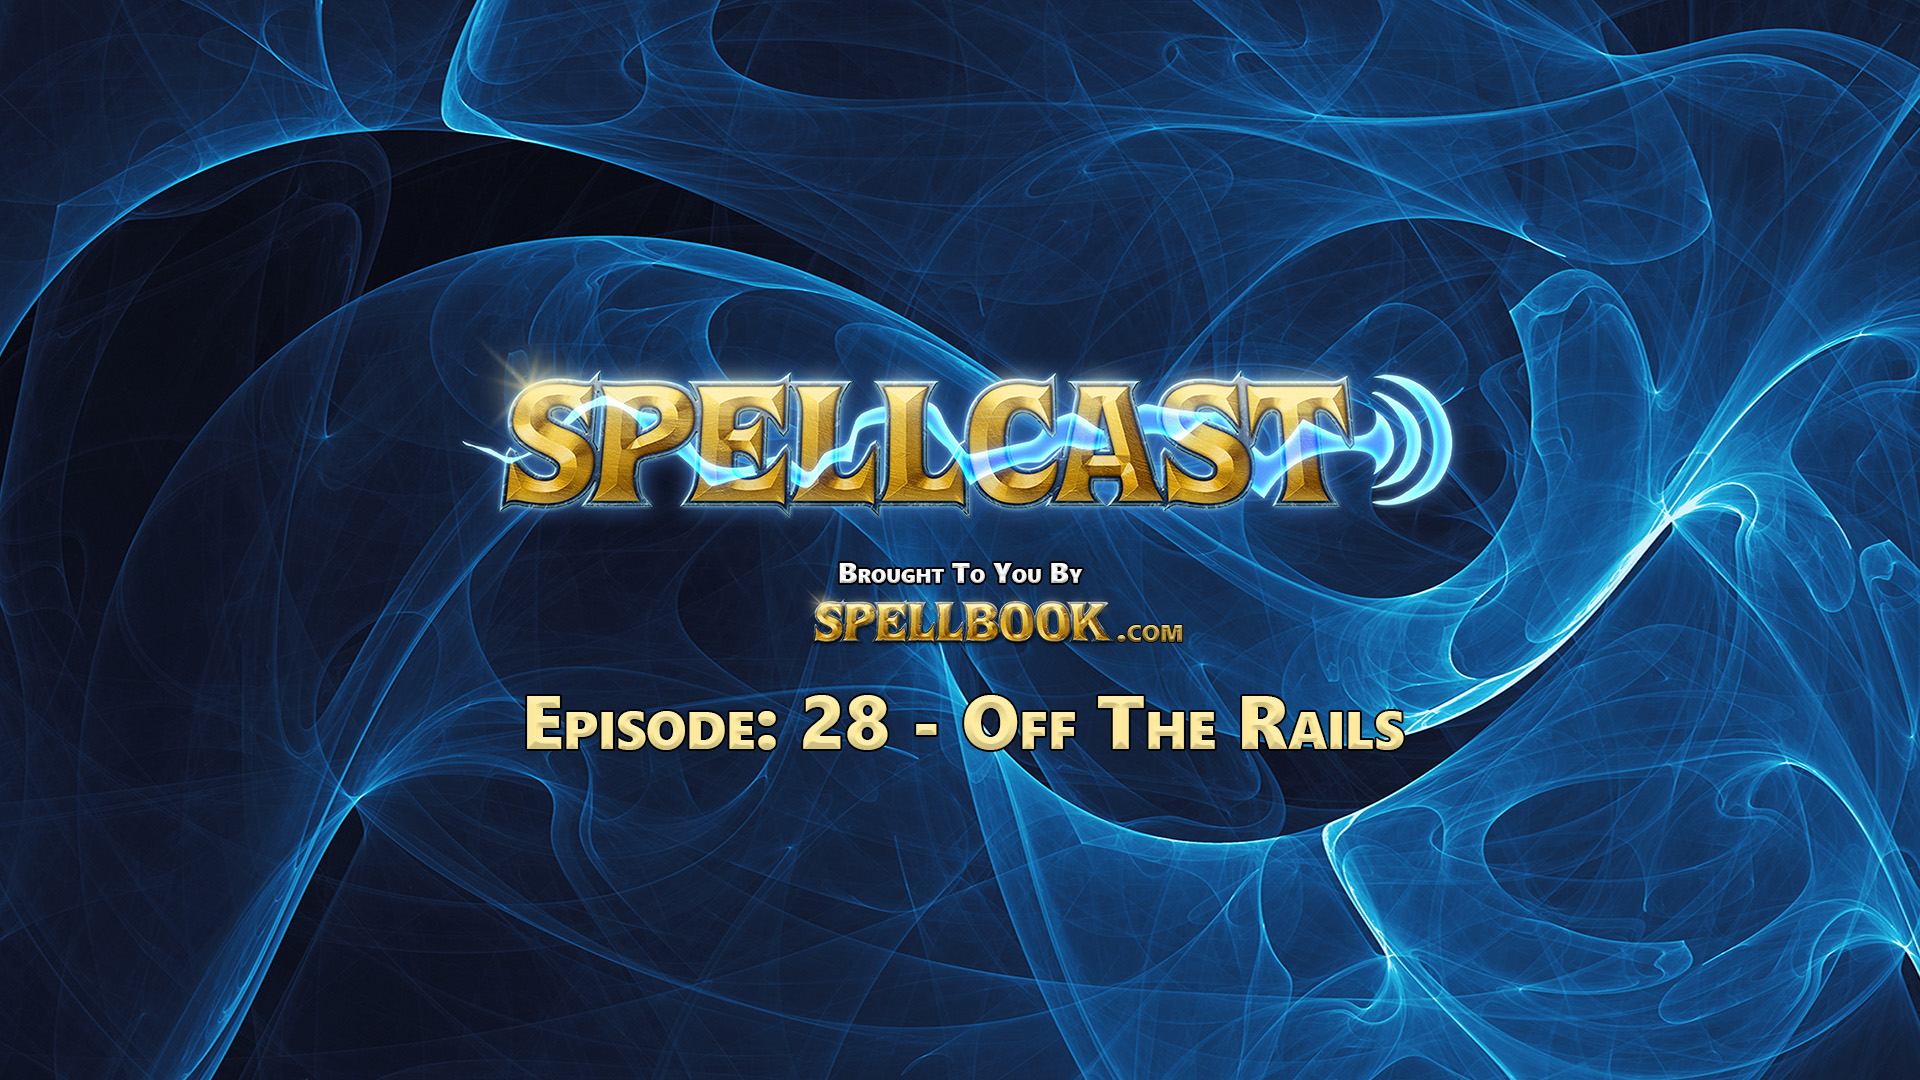 Spellcast Episode: 28 - Off The rails